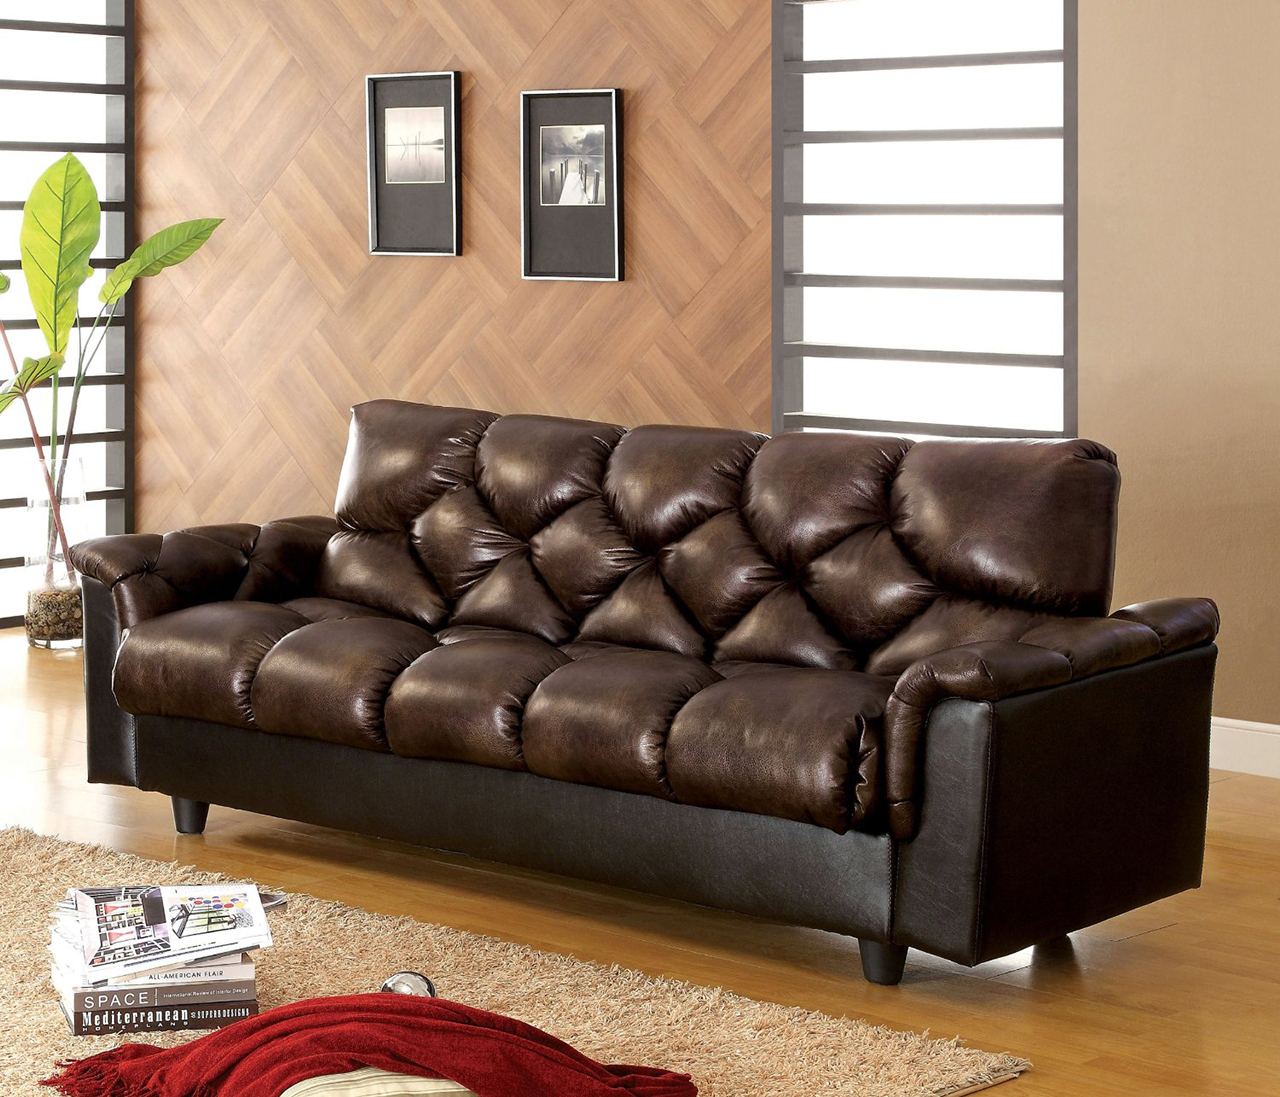 Sleeper Sofa - Carlington Leather Vinyl Storage Sleeper Sofa